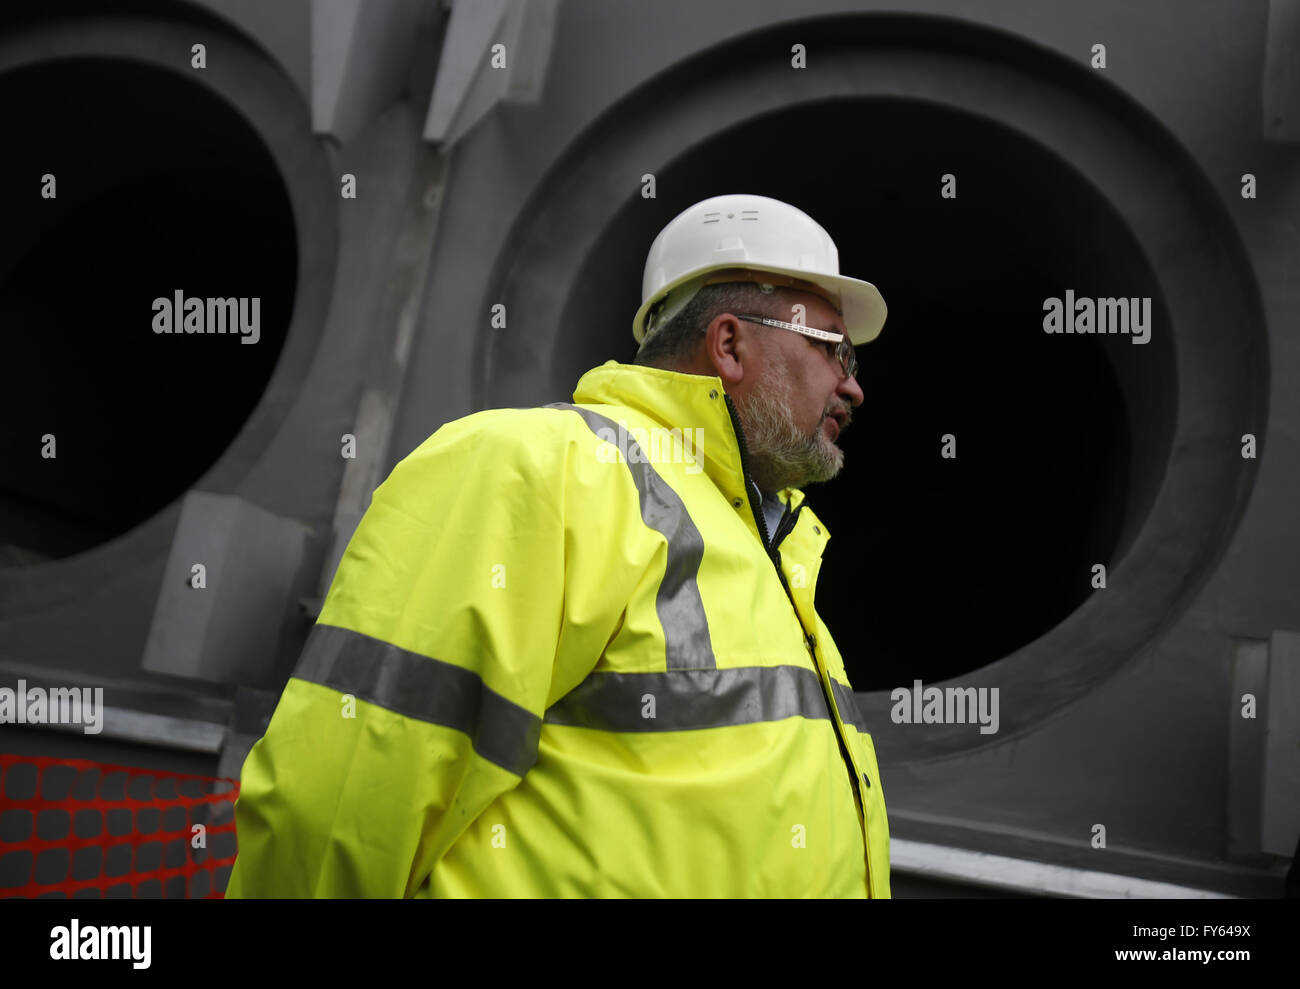 April 22, 2016 - Worker is seen at the nuclear-fuel storage facility next to the Chernobyl Nuclear Power plant, - Stock Image